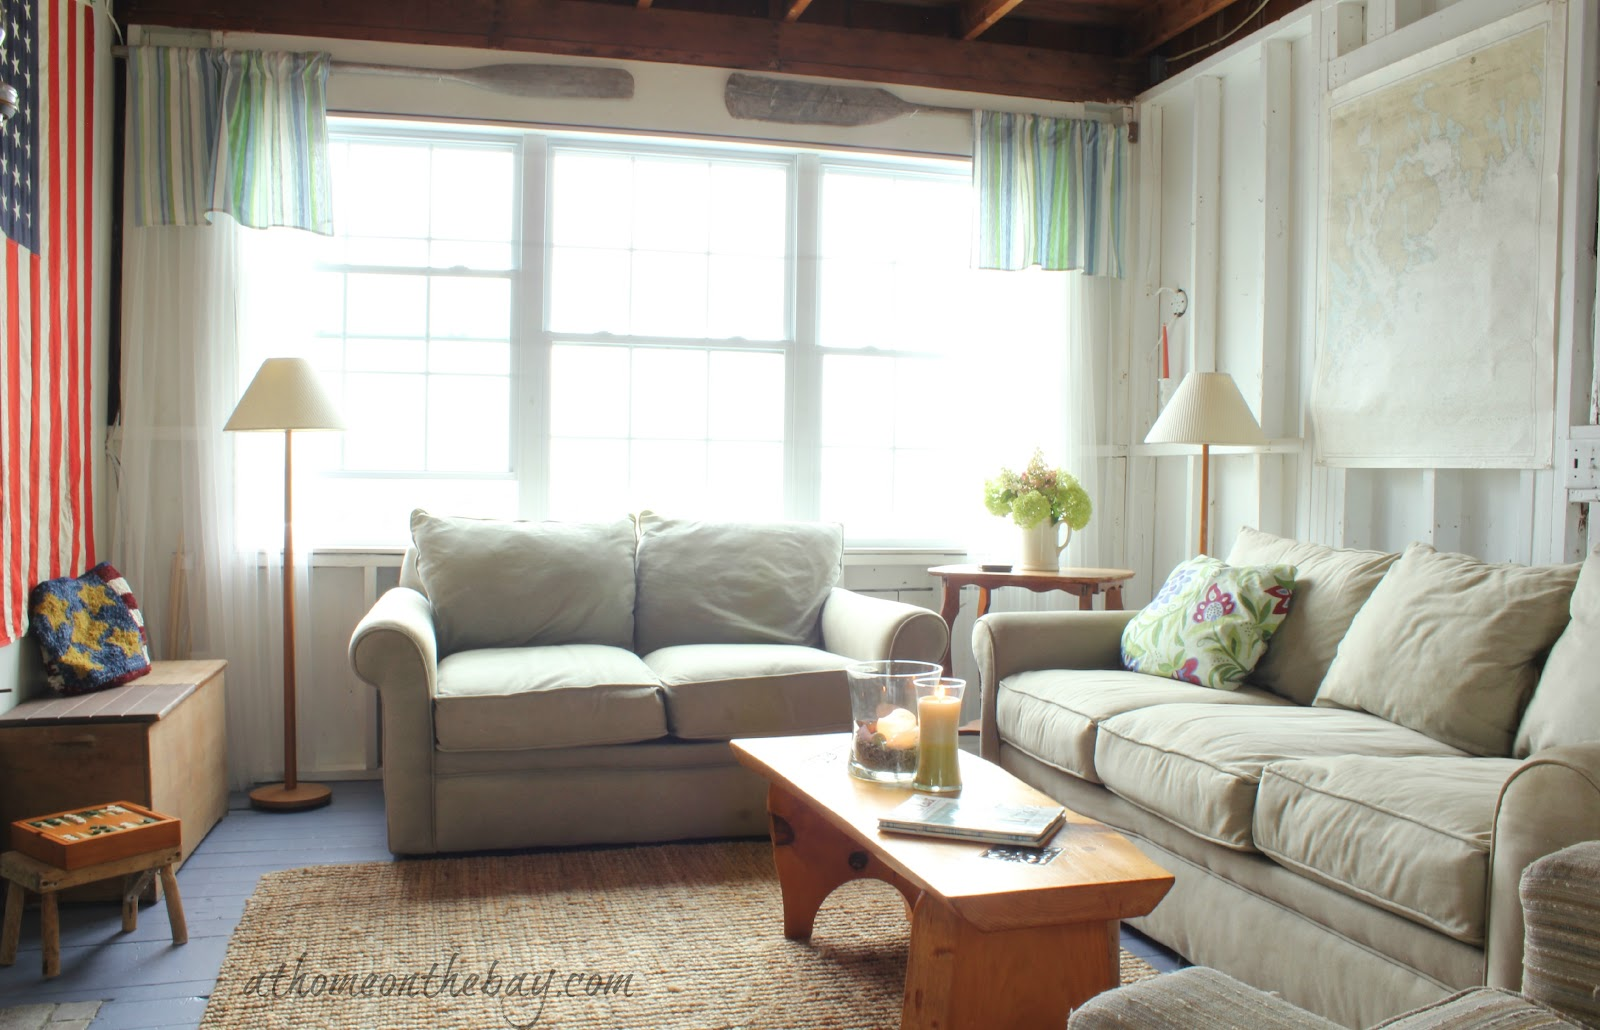 A coastal cottage living room Coastal living rooms ideas